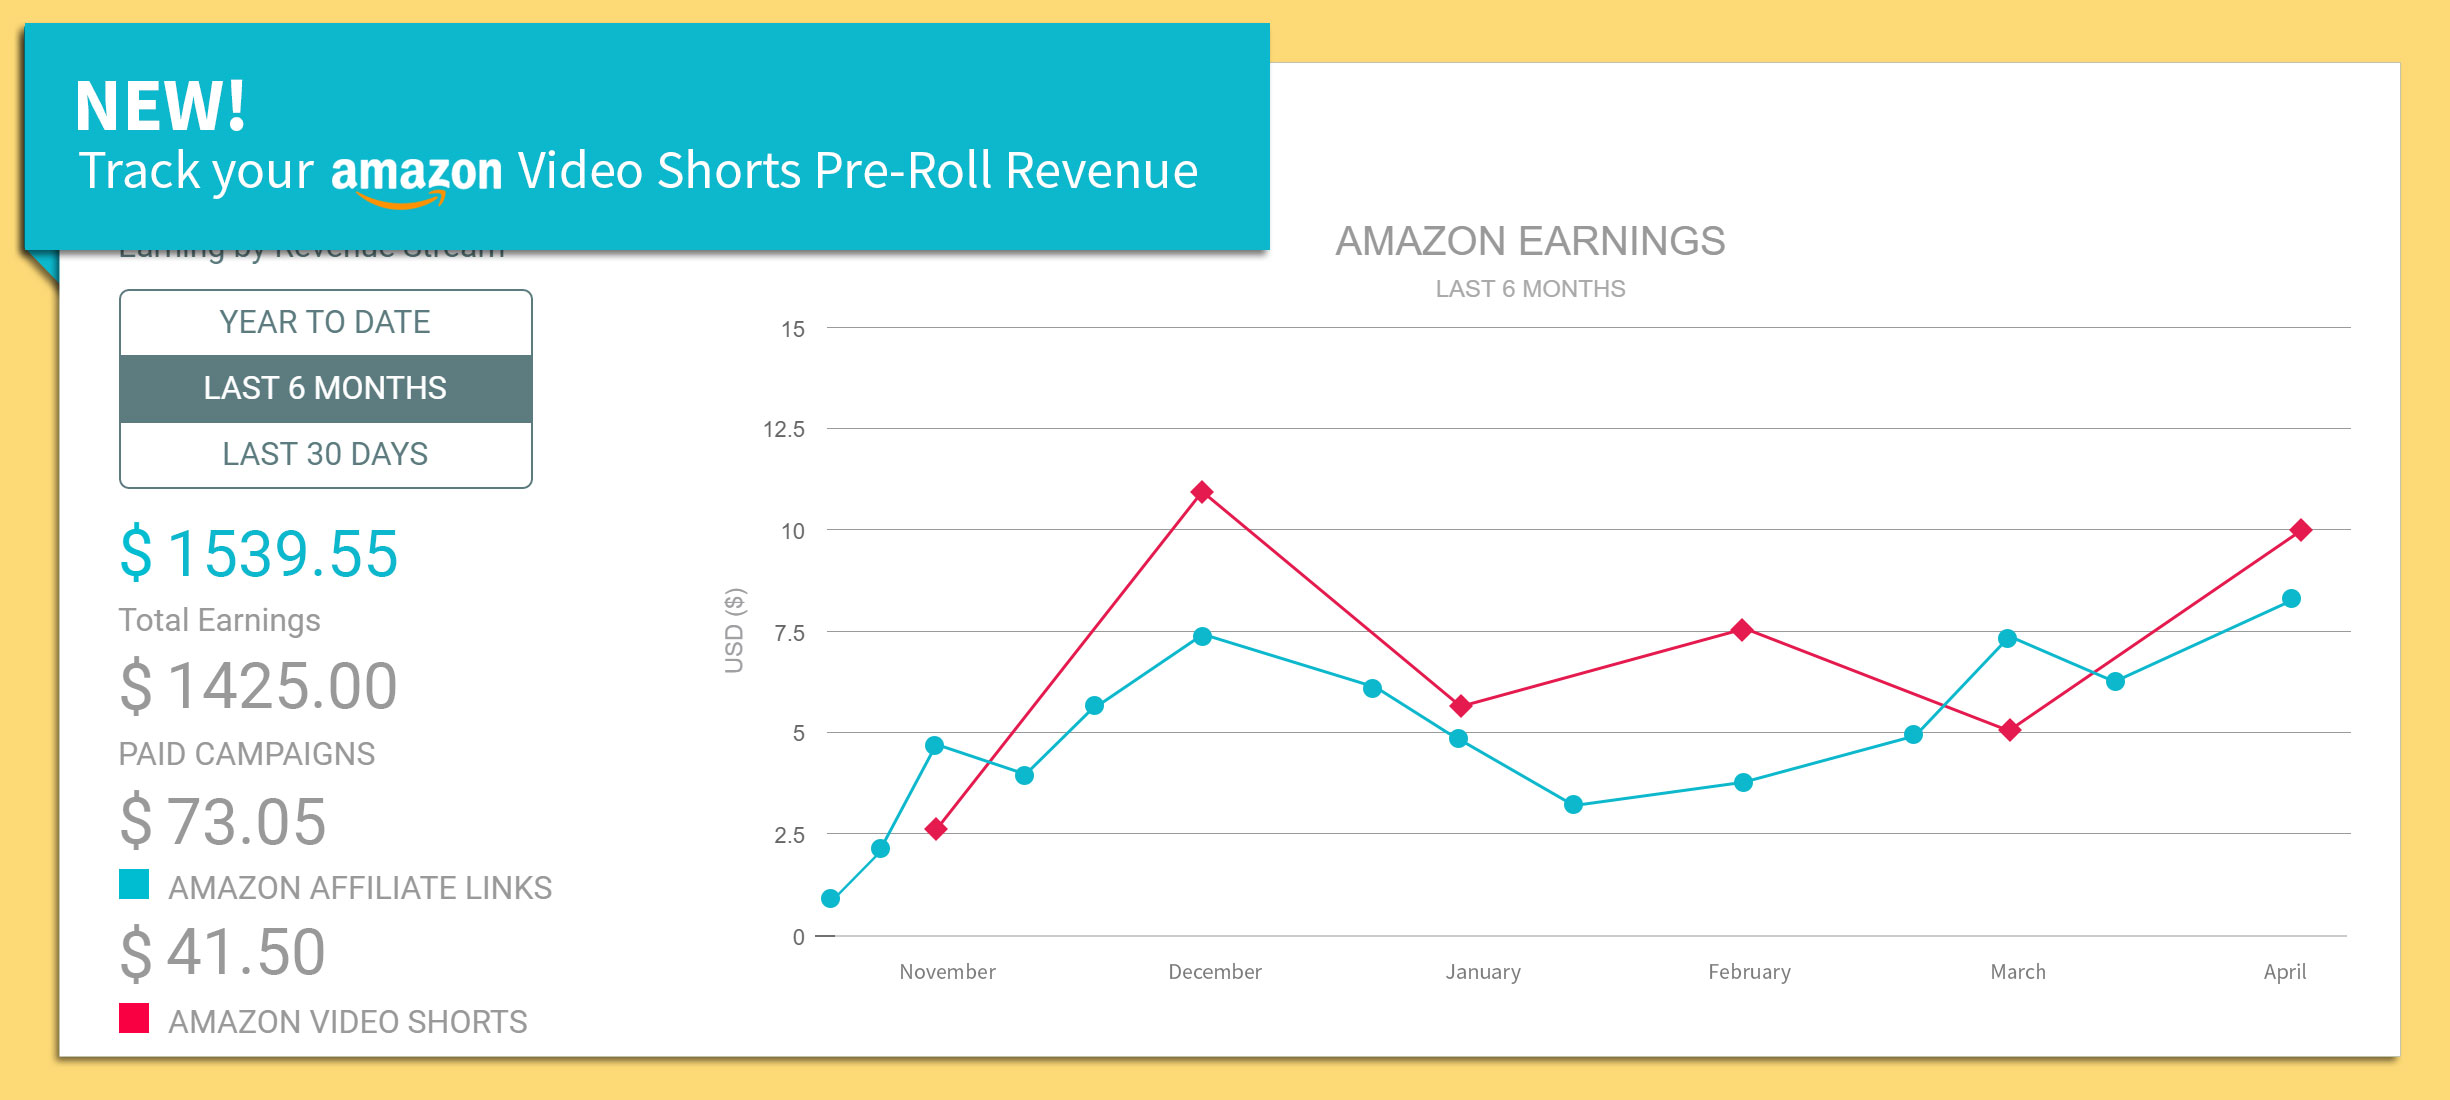 Amazon Earnings Line Graph